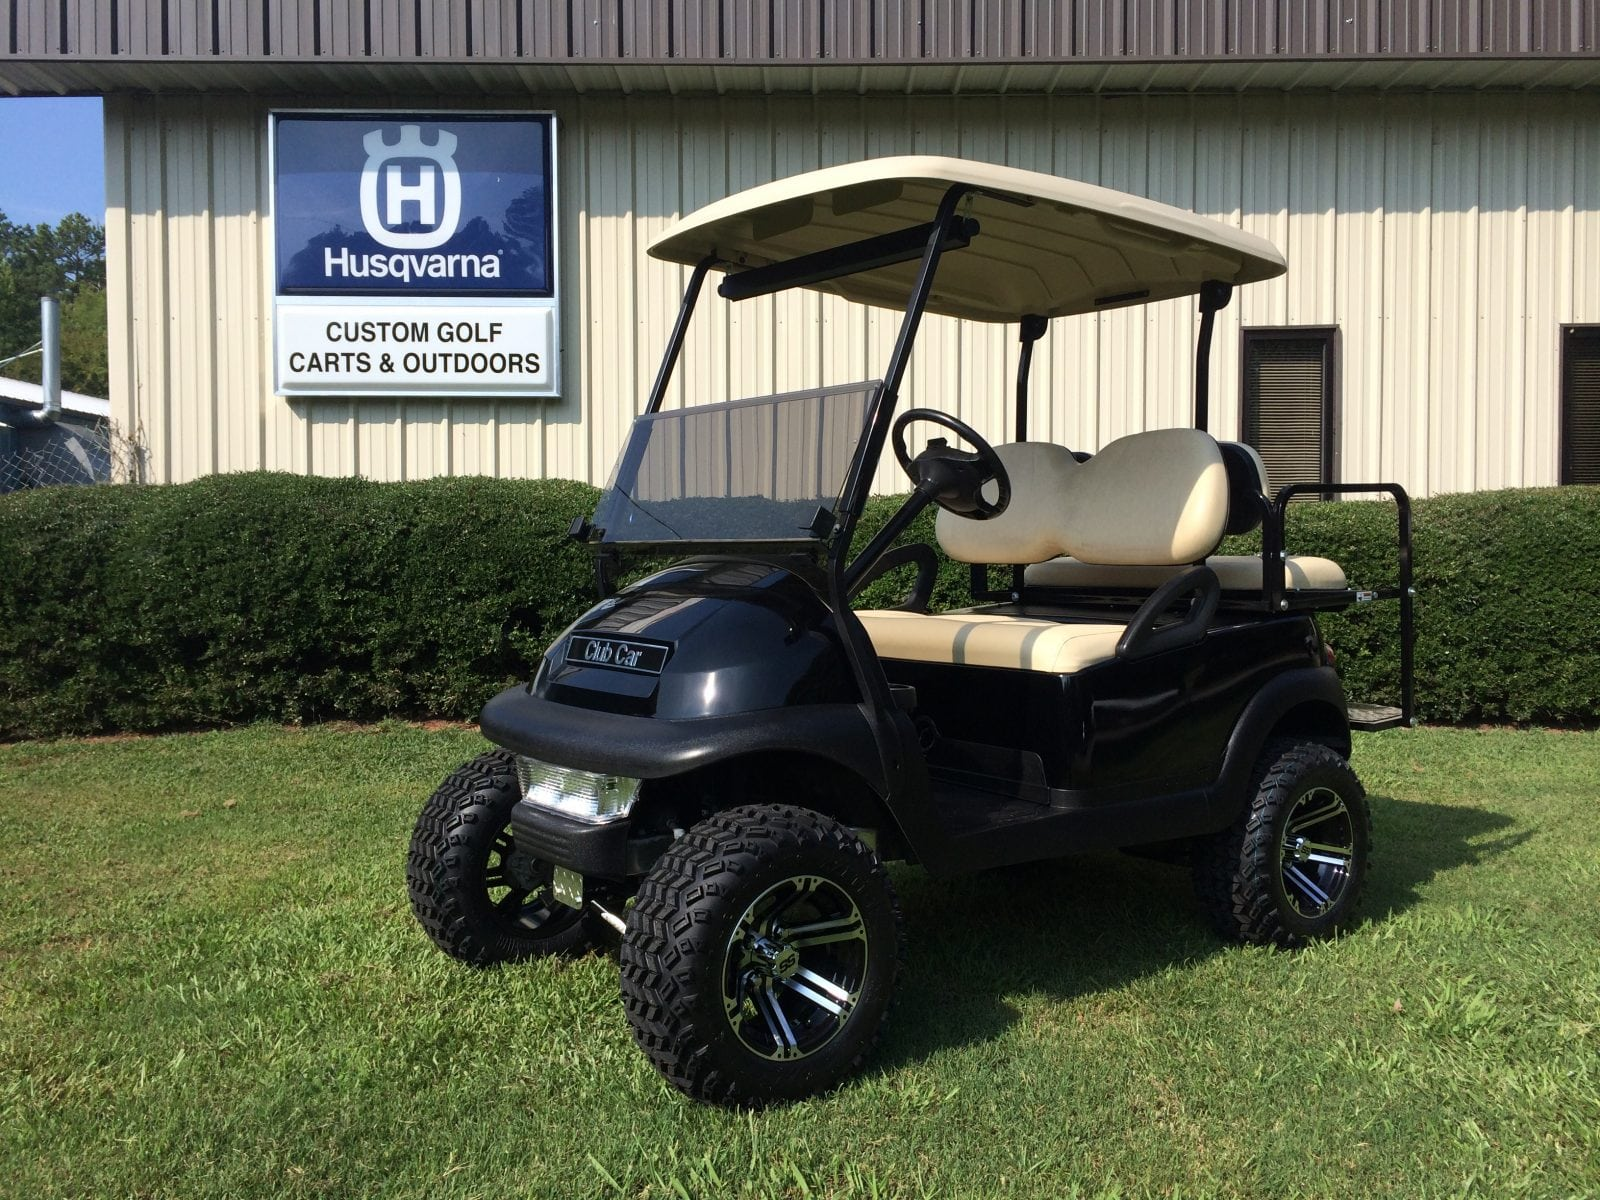 Used Cars For Sale Near Me >> Golf Carts Near Me | Find Your Local Service